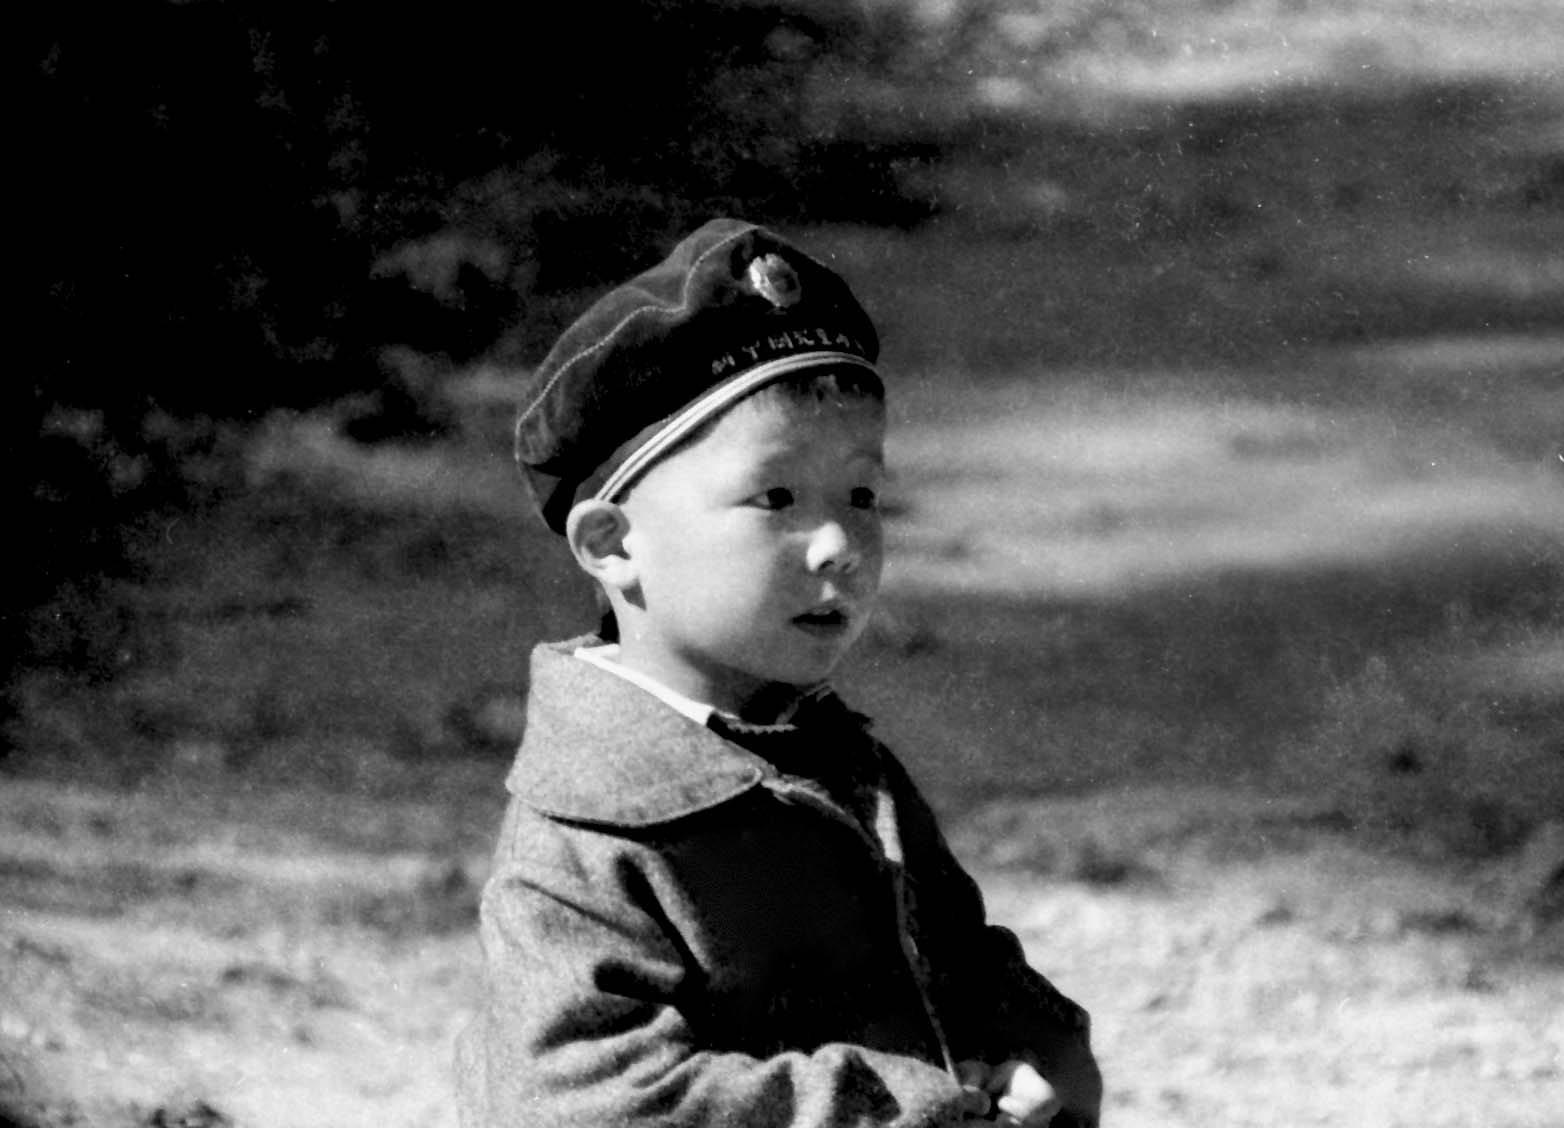 hans_schneider_china_1963_photography_of_china_7.jpg